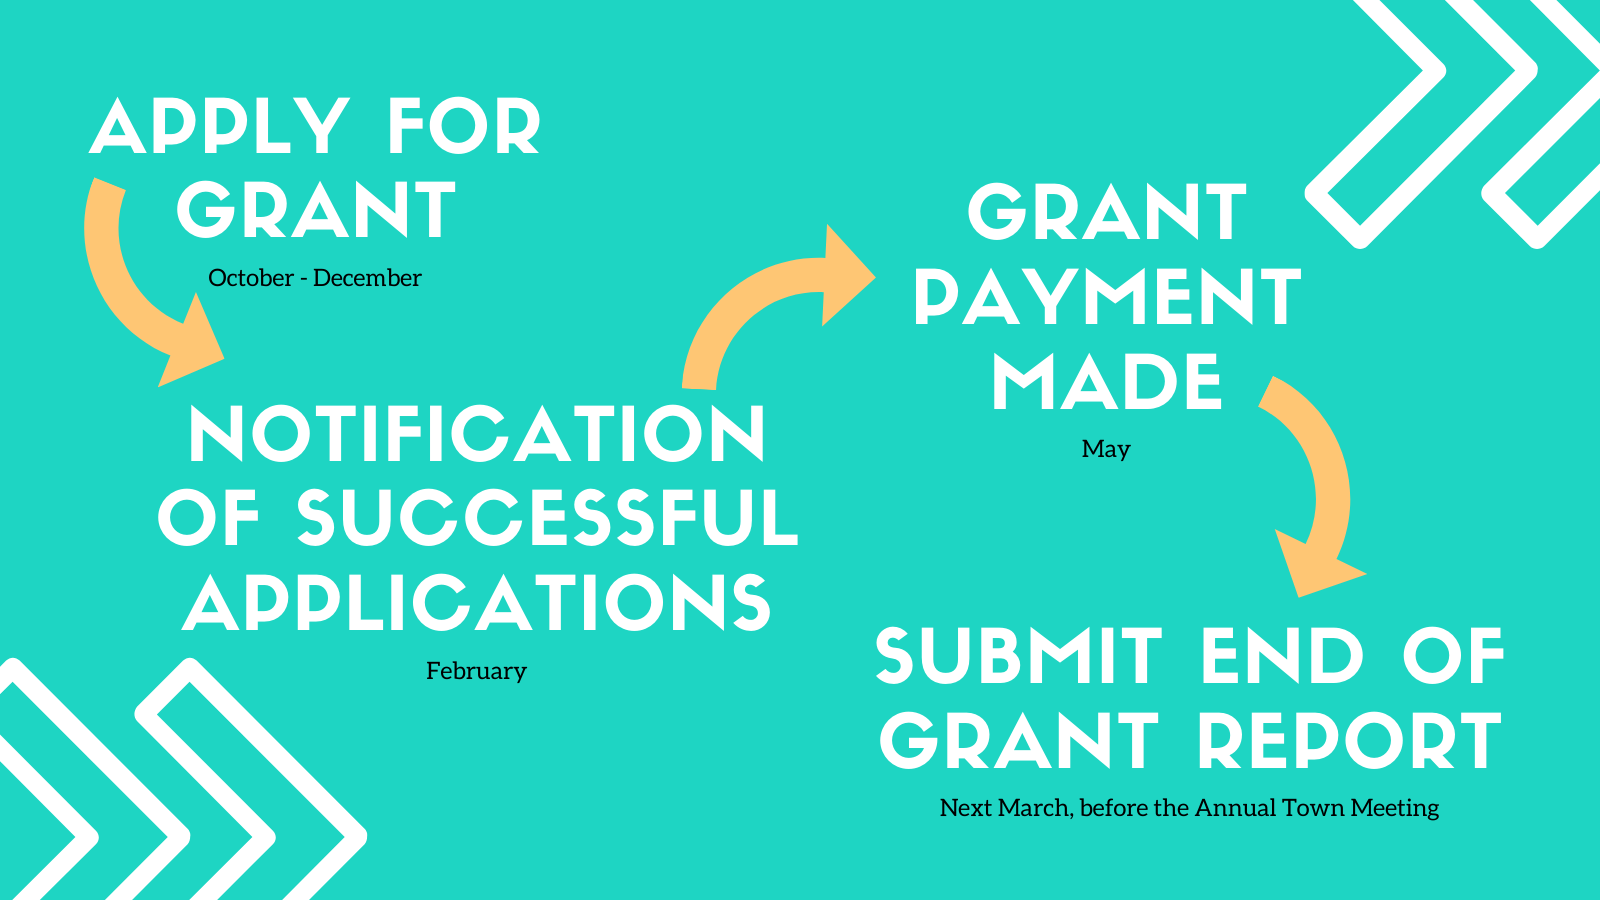 Grants timeline infographic